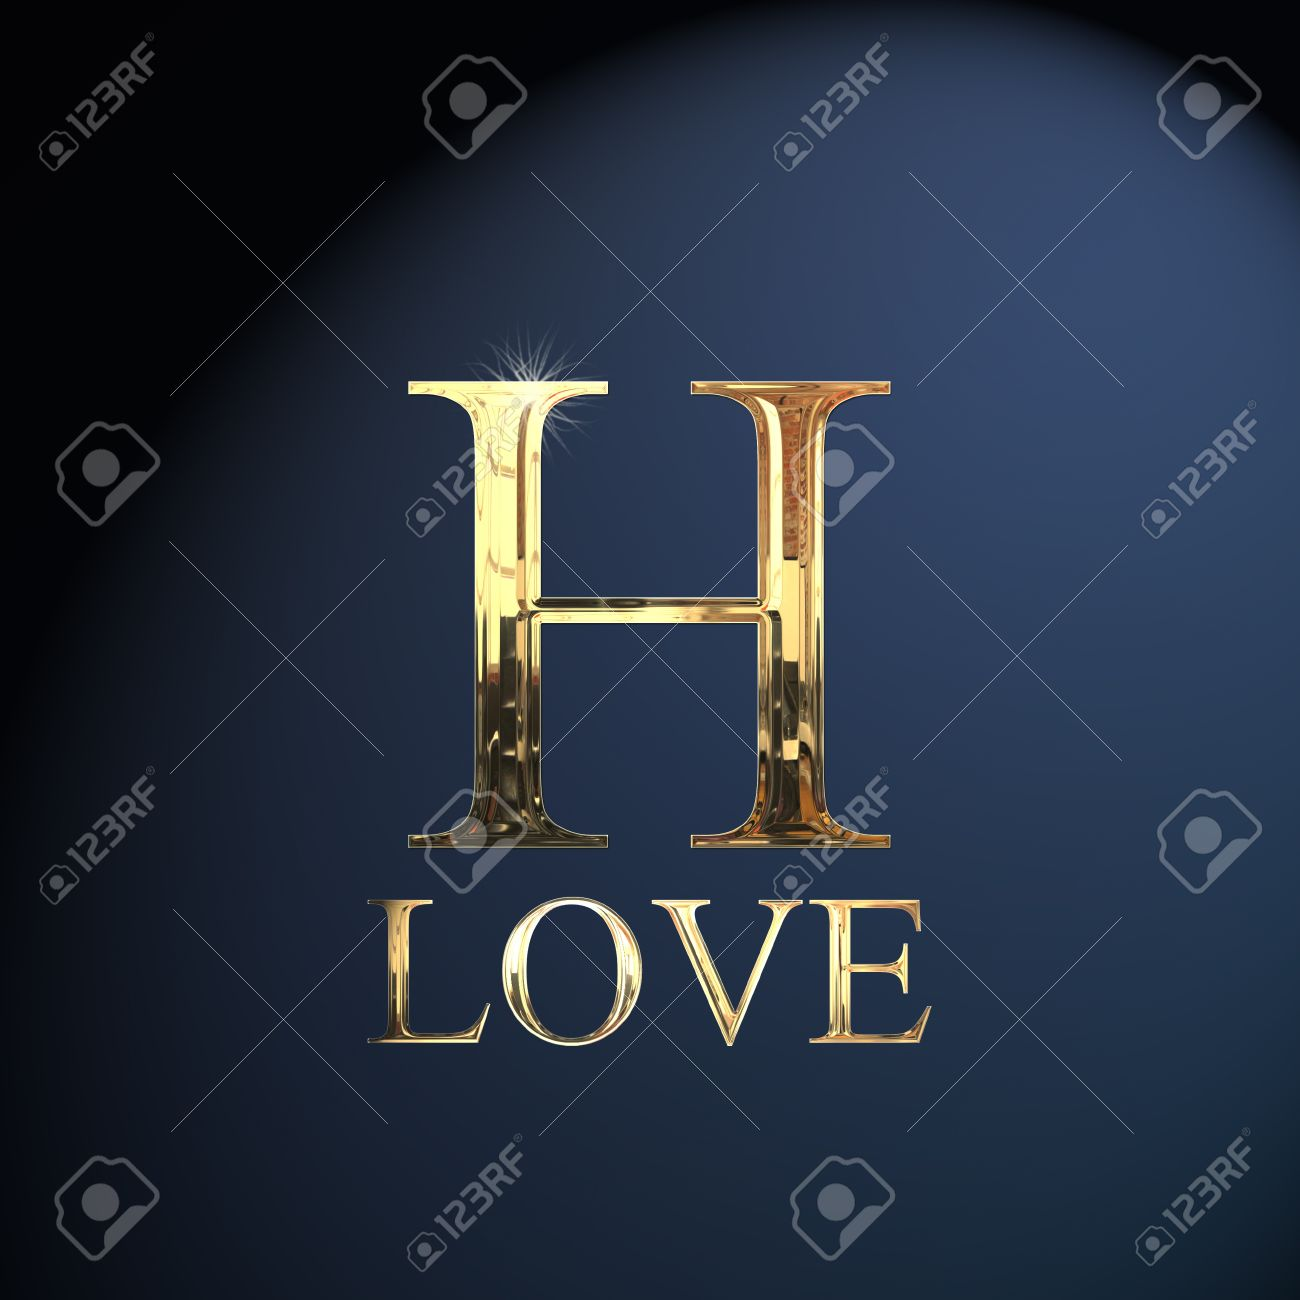 Download H Word Wallpaper Gallery